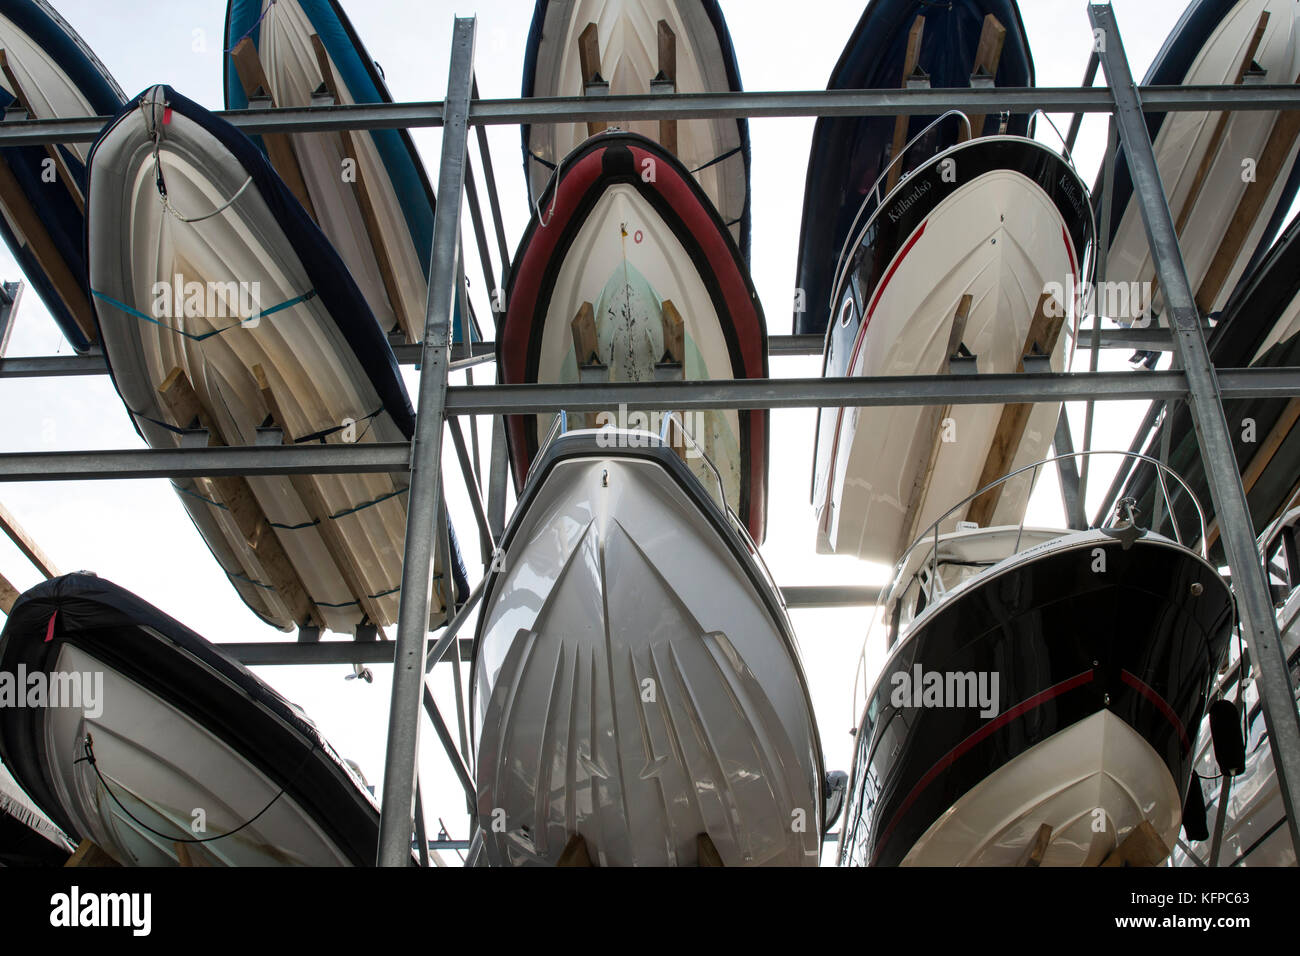 Boats stacked in storage at Camber Dock, Portsmouth - Stock Image